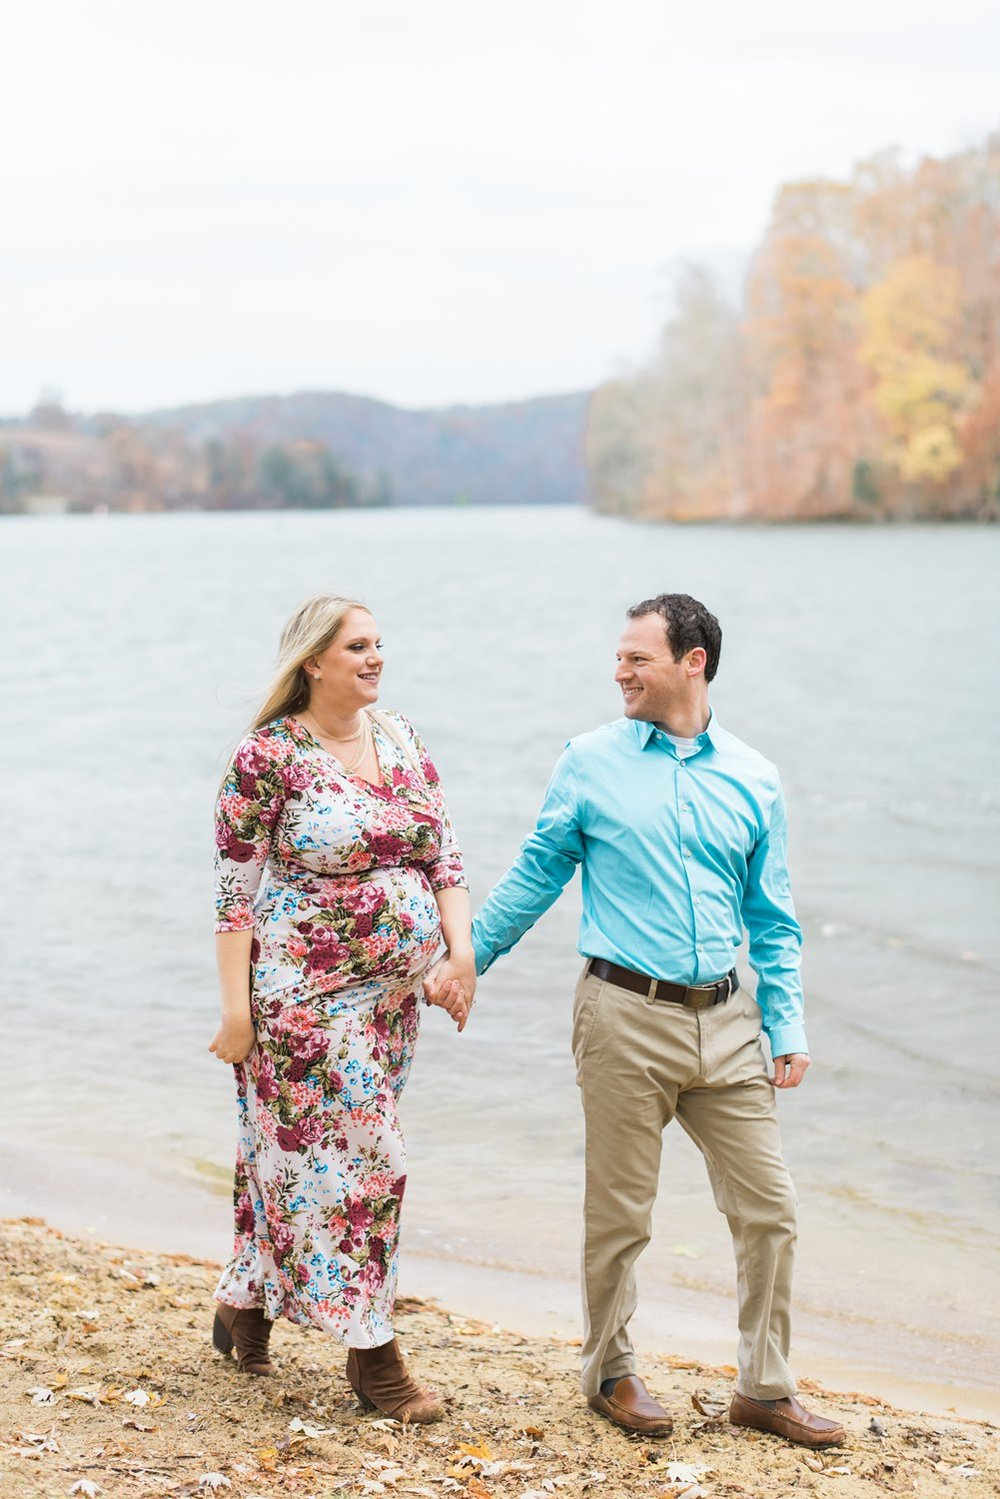 Melton Hill Park Maternity | Knoxville Photographer